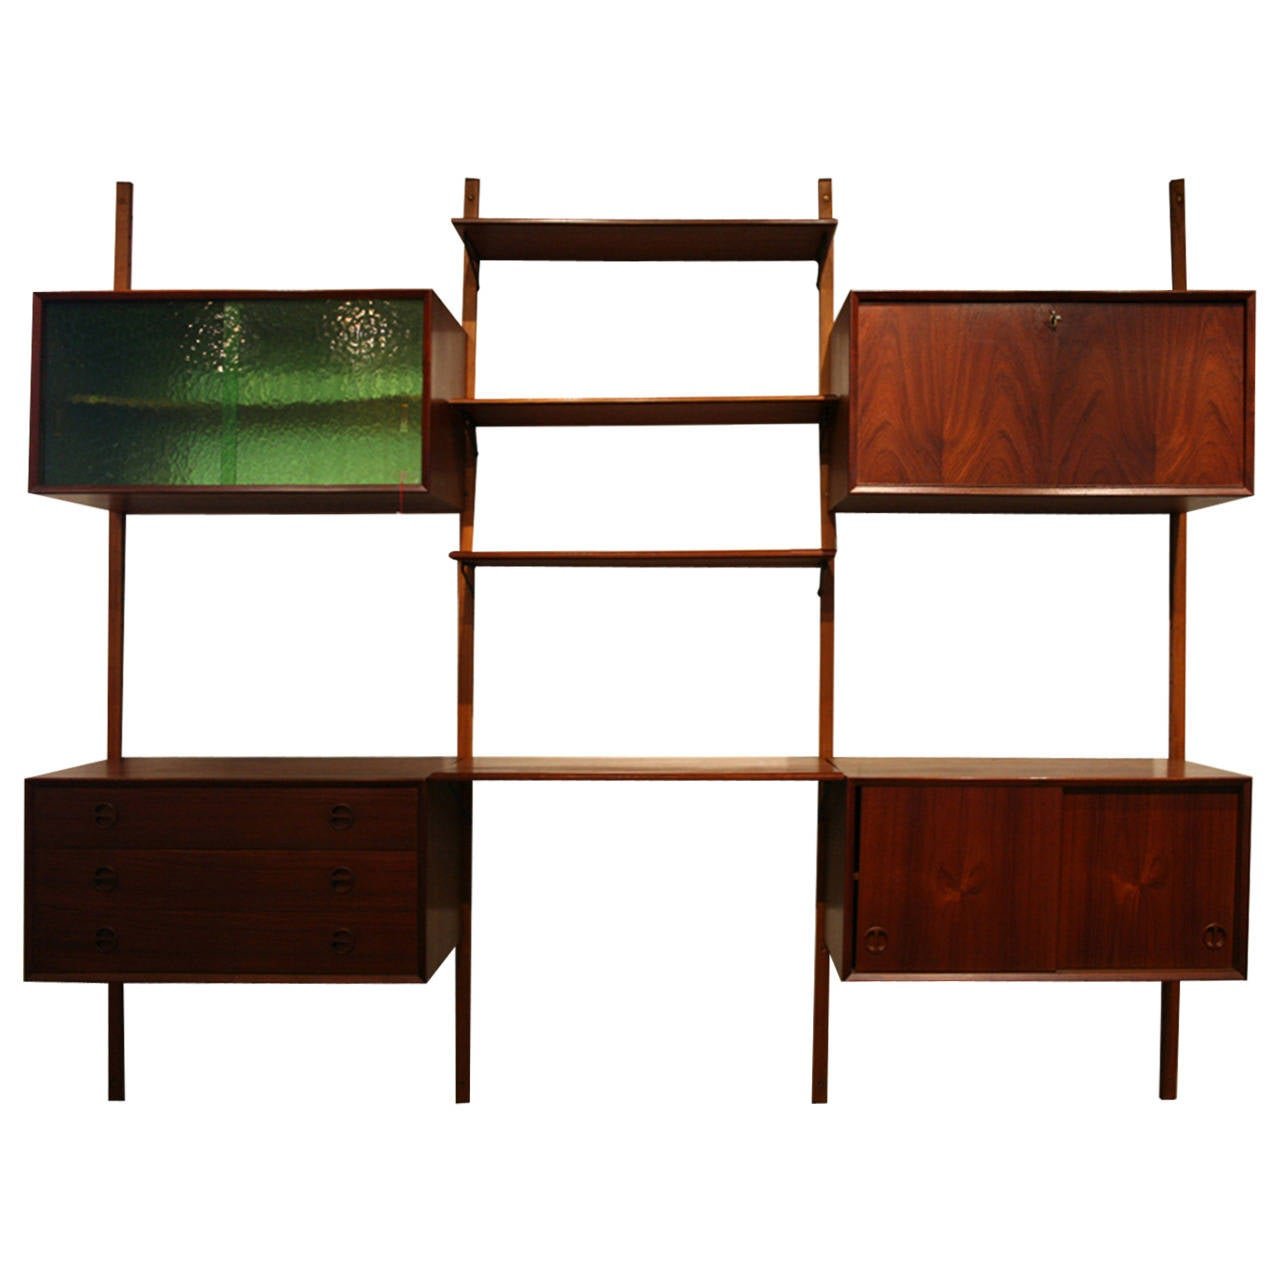 Danish Mid Century Modern Teak Wall System Shelving Bar Cabinet At 1stdibs